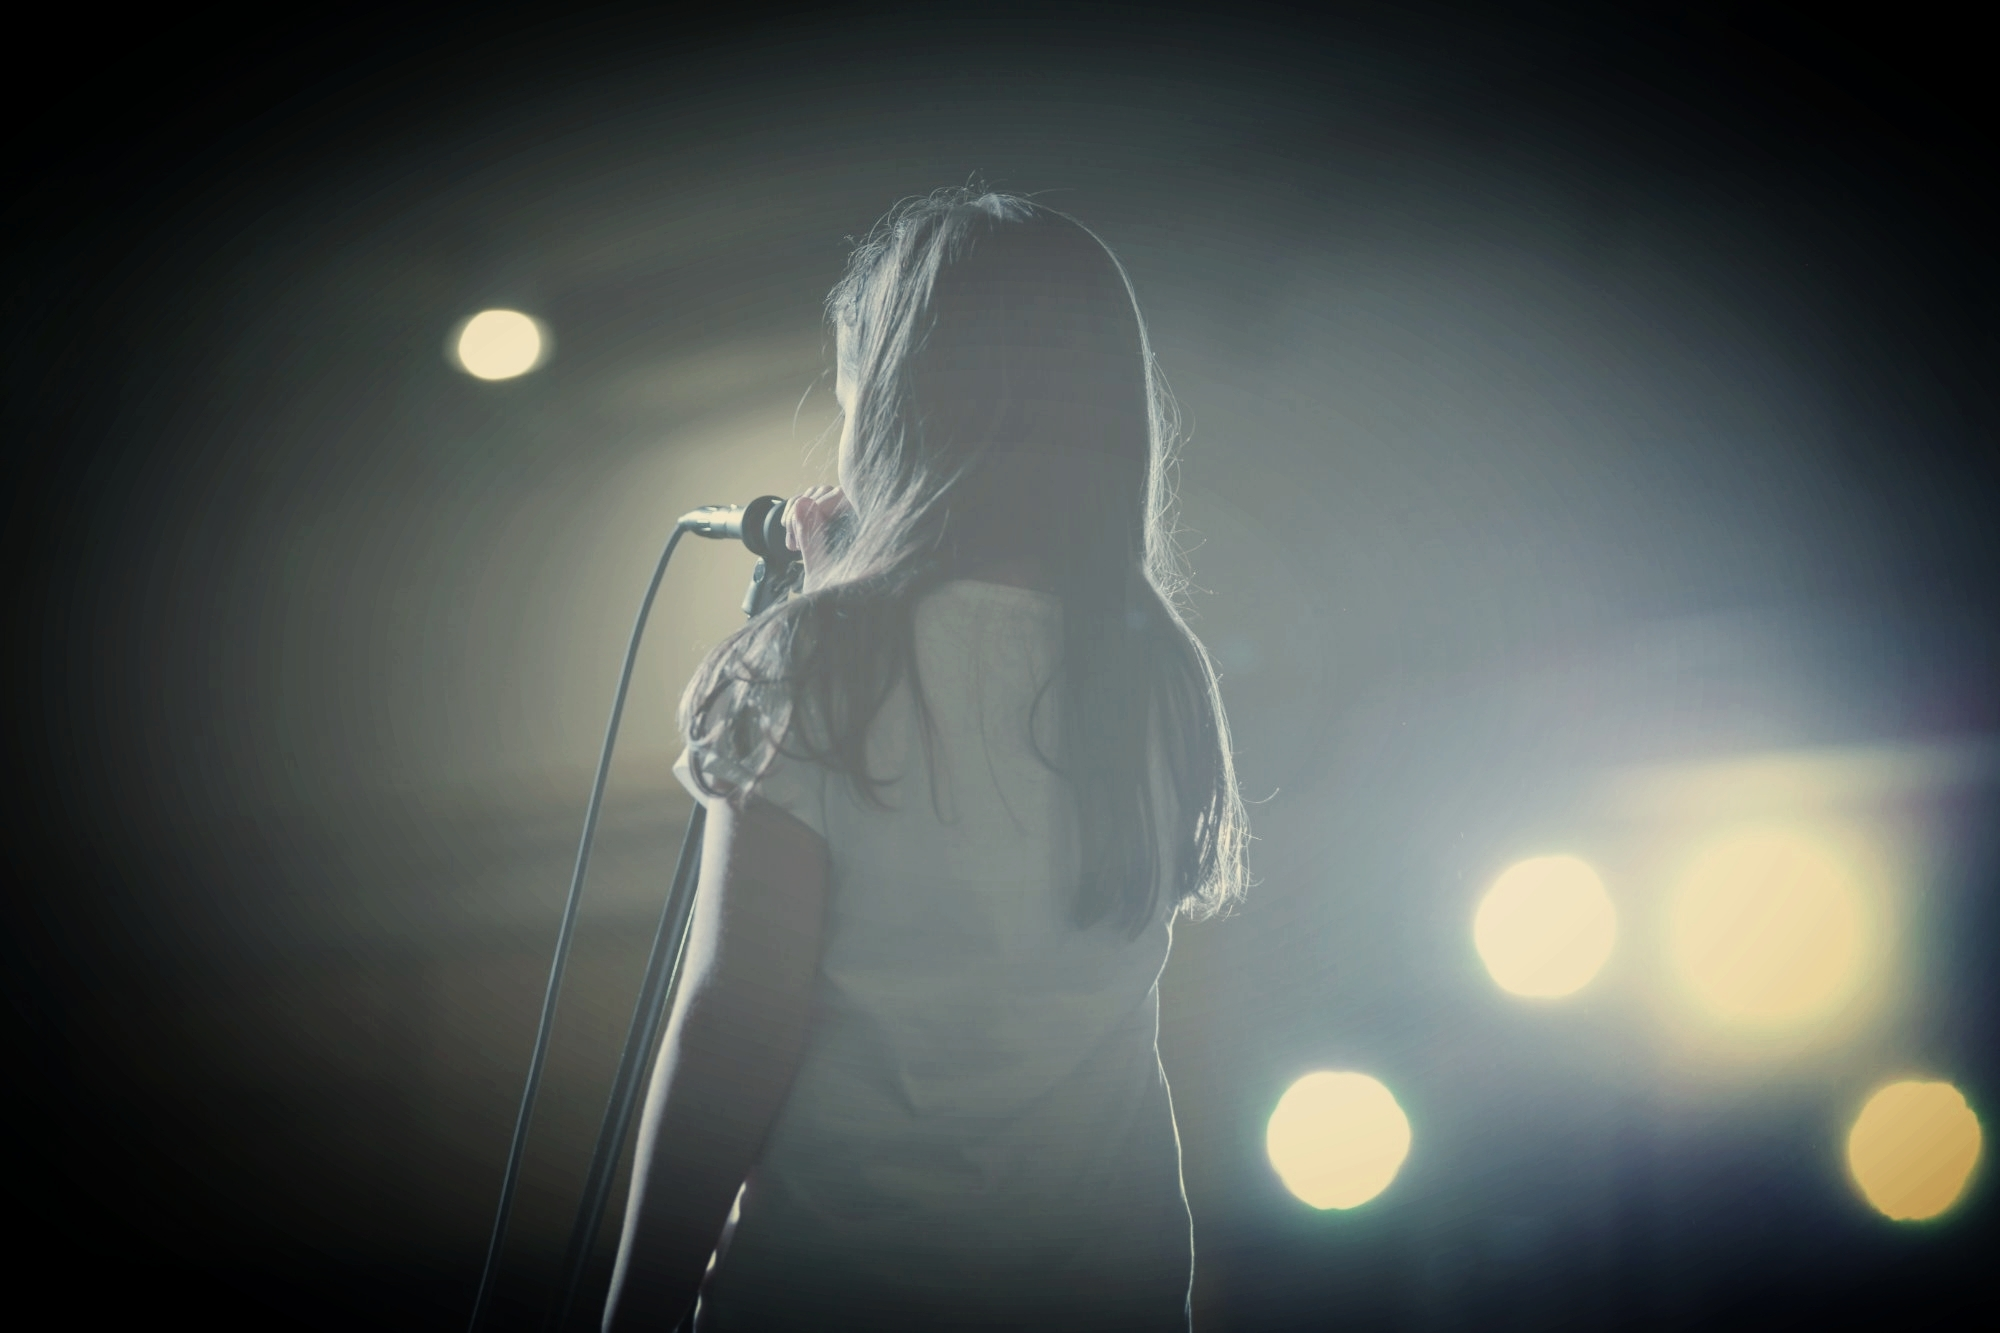 Girl on stage